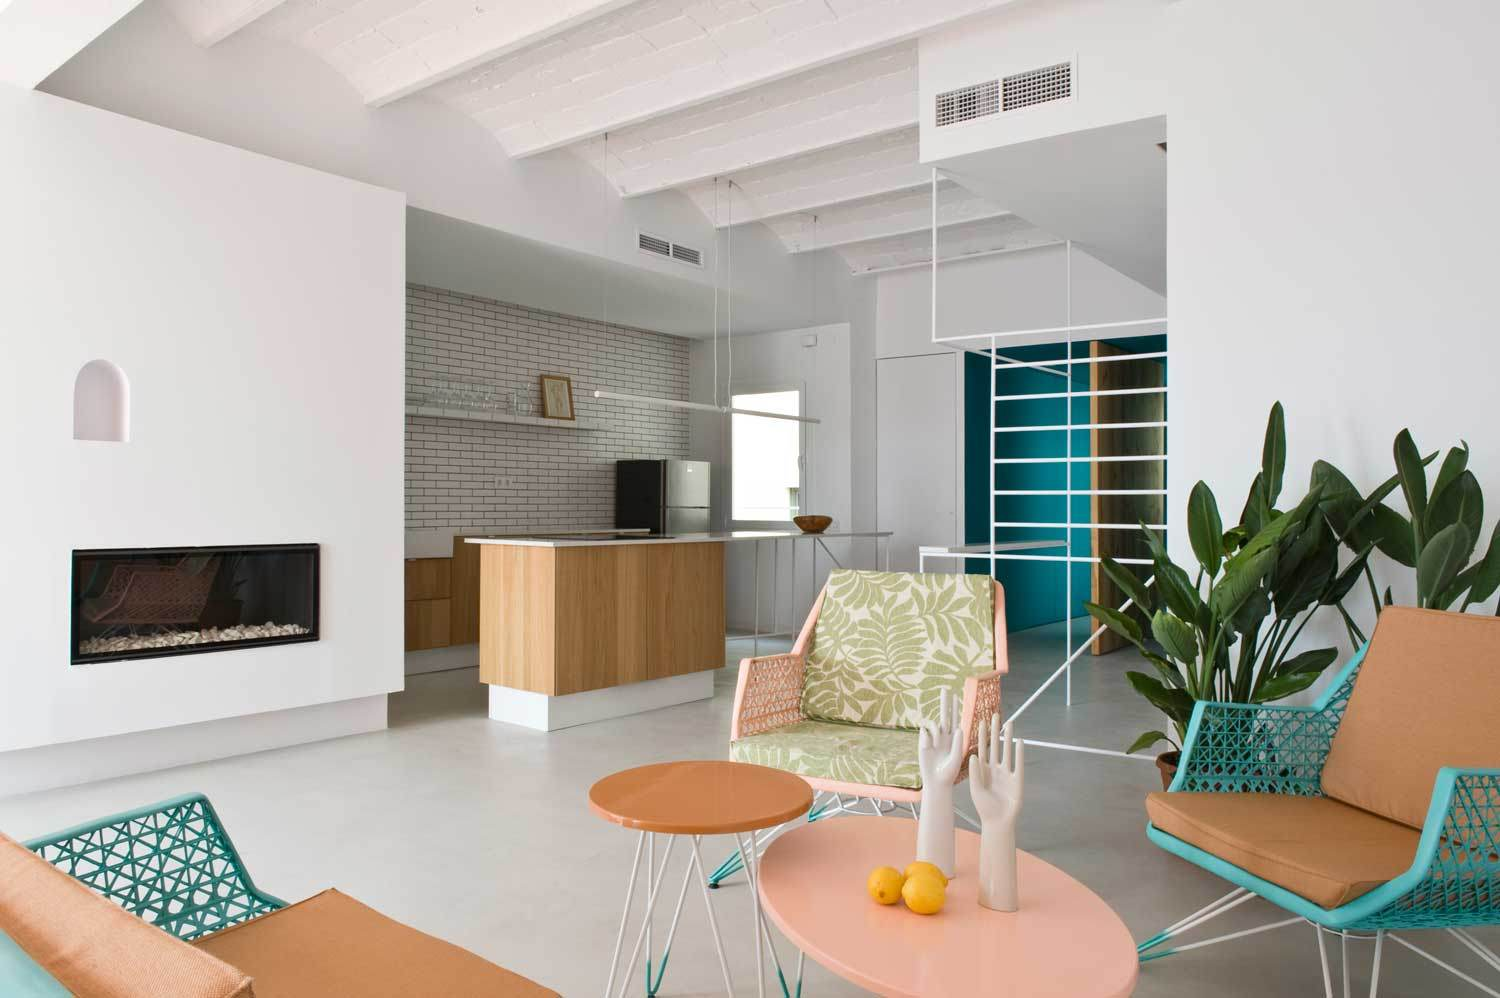 The holiday apartment revamp